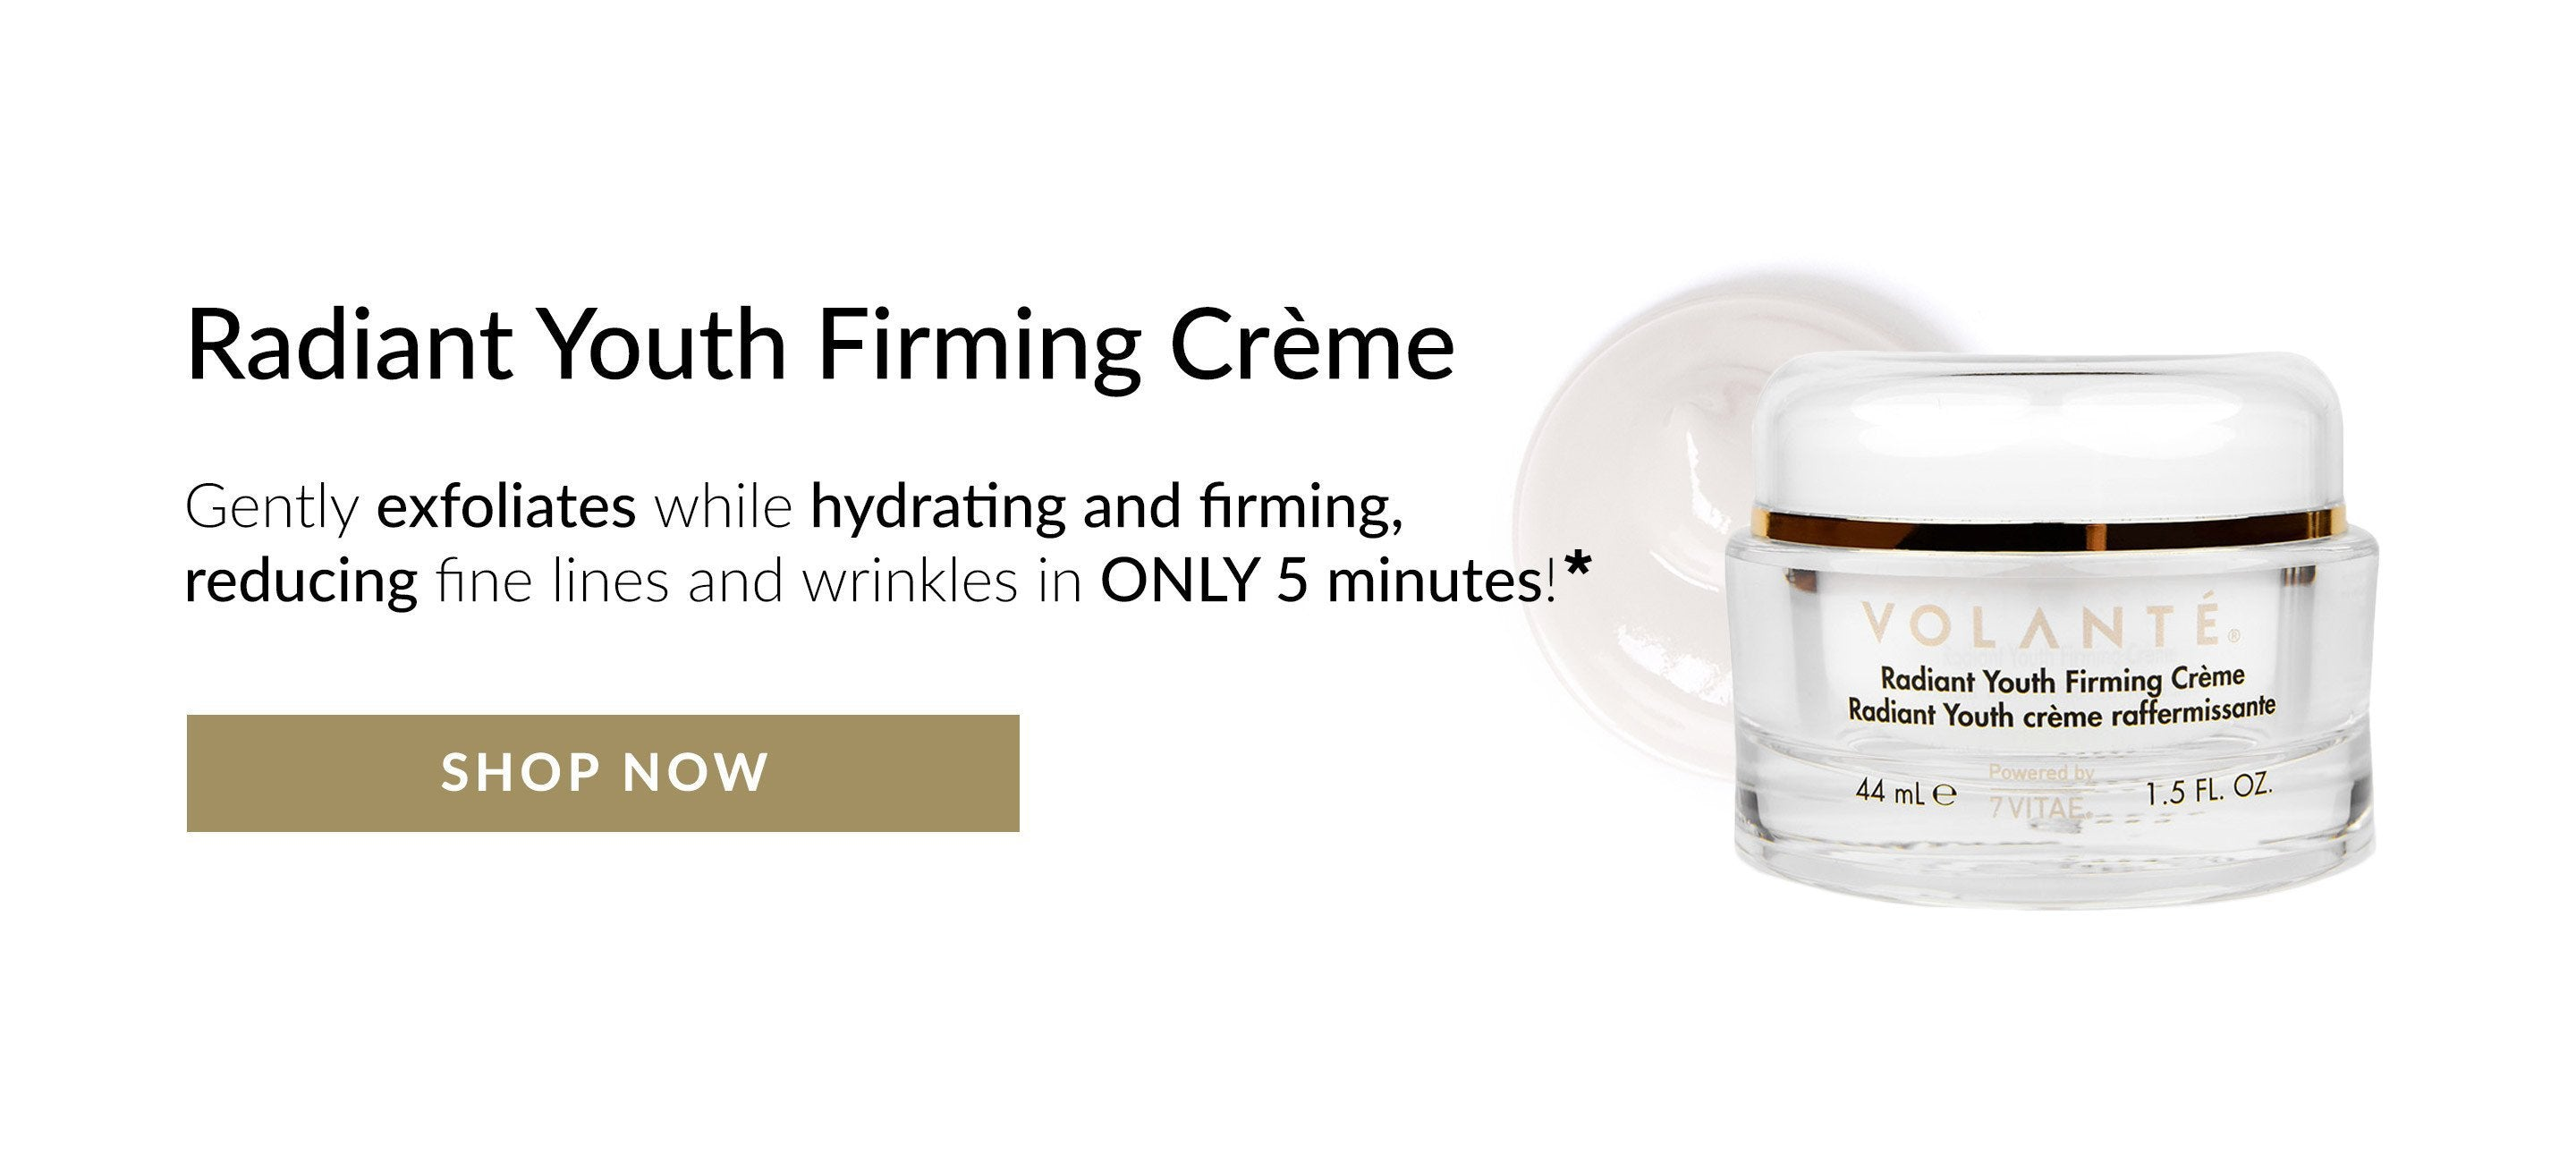 Radiant Youth Firming Creme